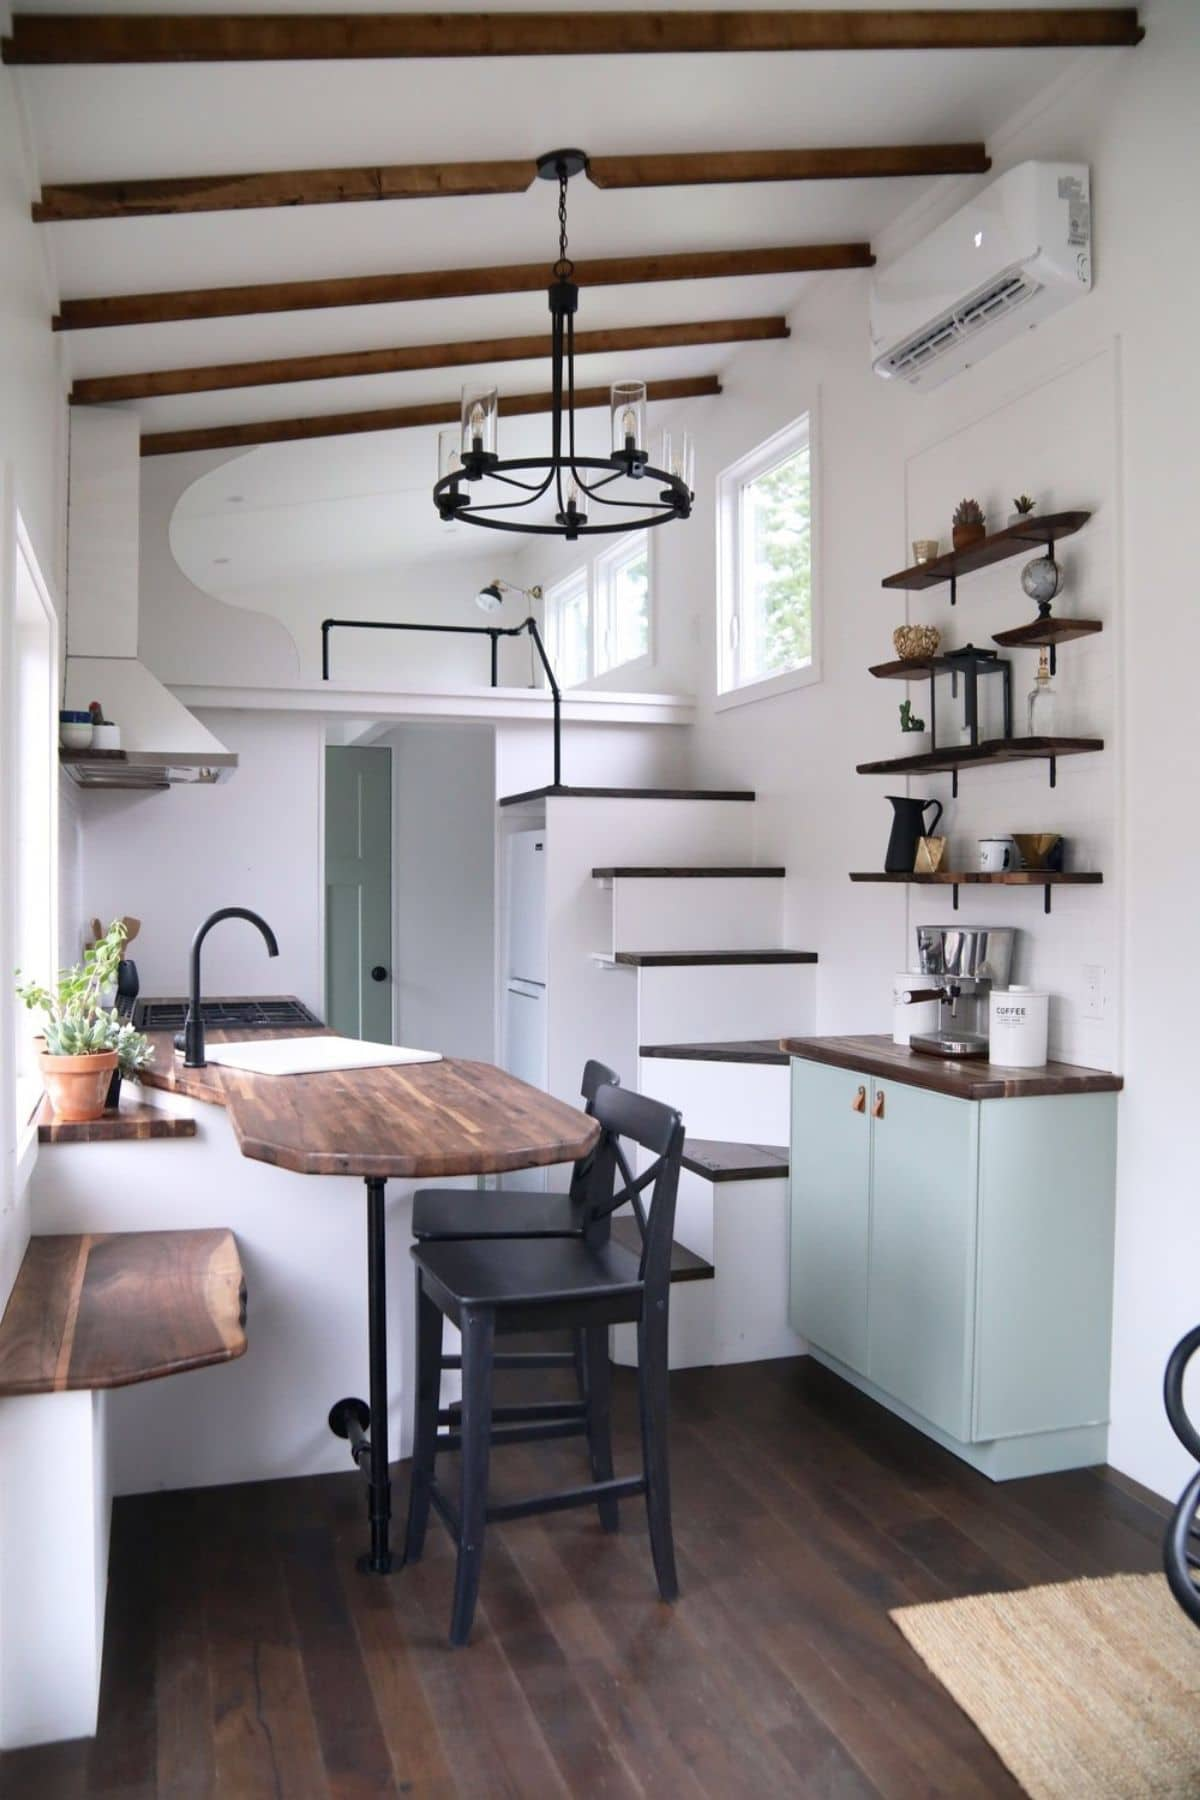 View into kitchen with black chairs at counter